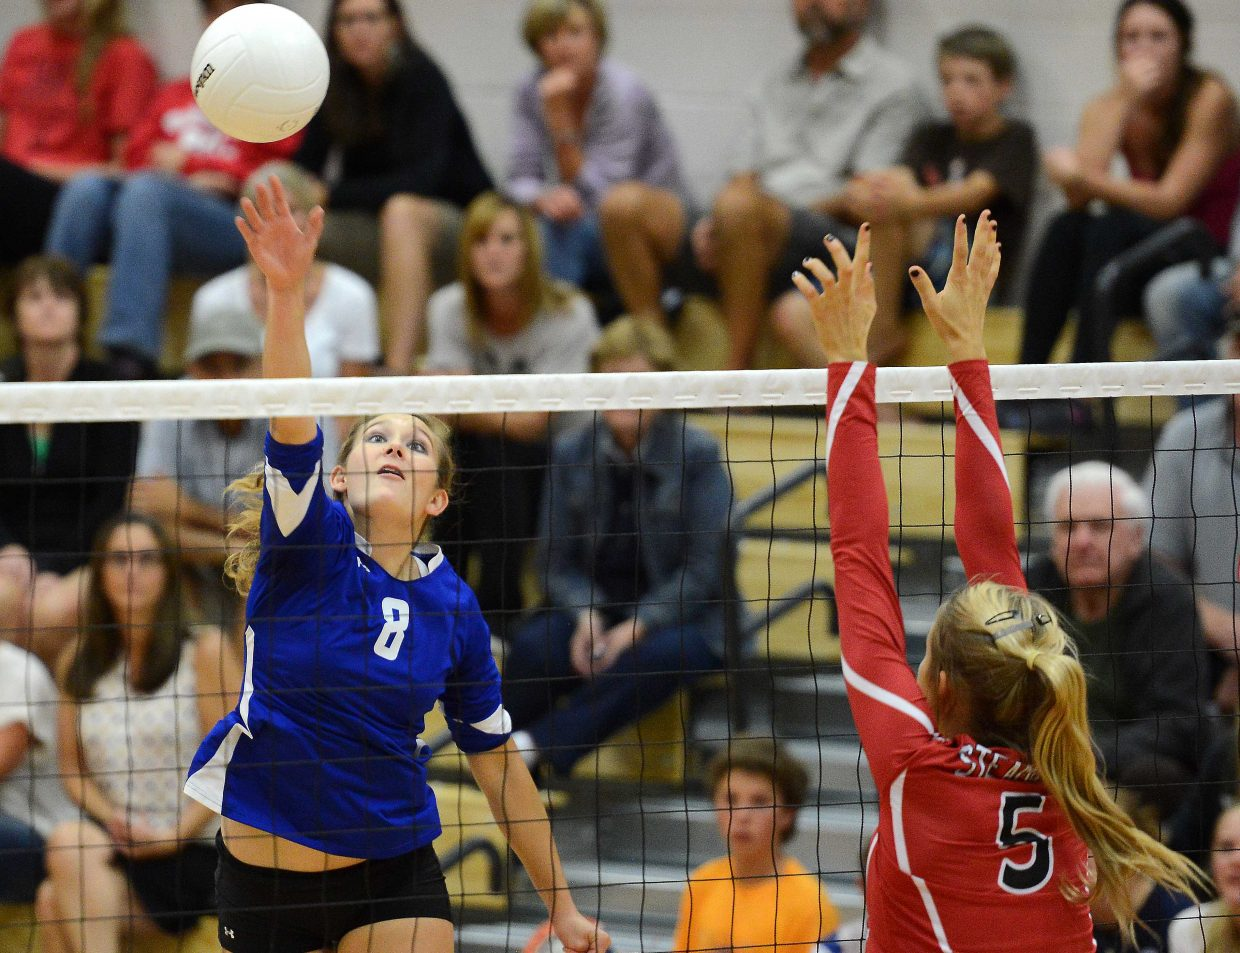 Moffat County's Britney Rothermund swings for a shot Thursday against Steamboat Springs.